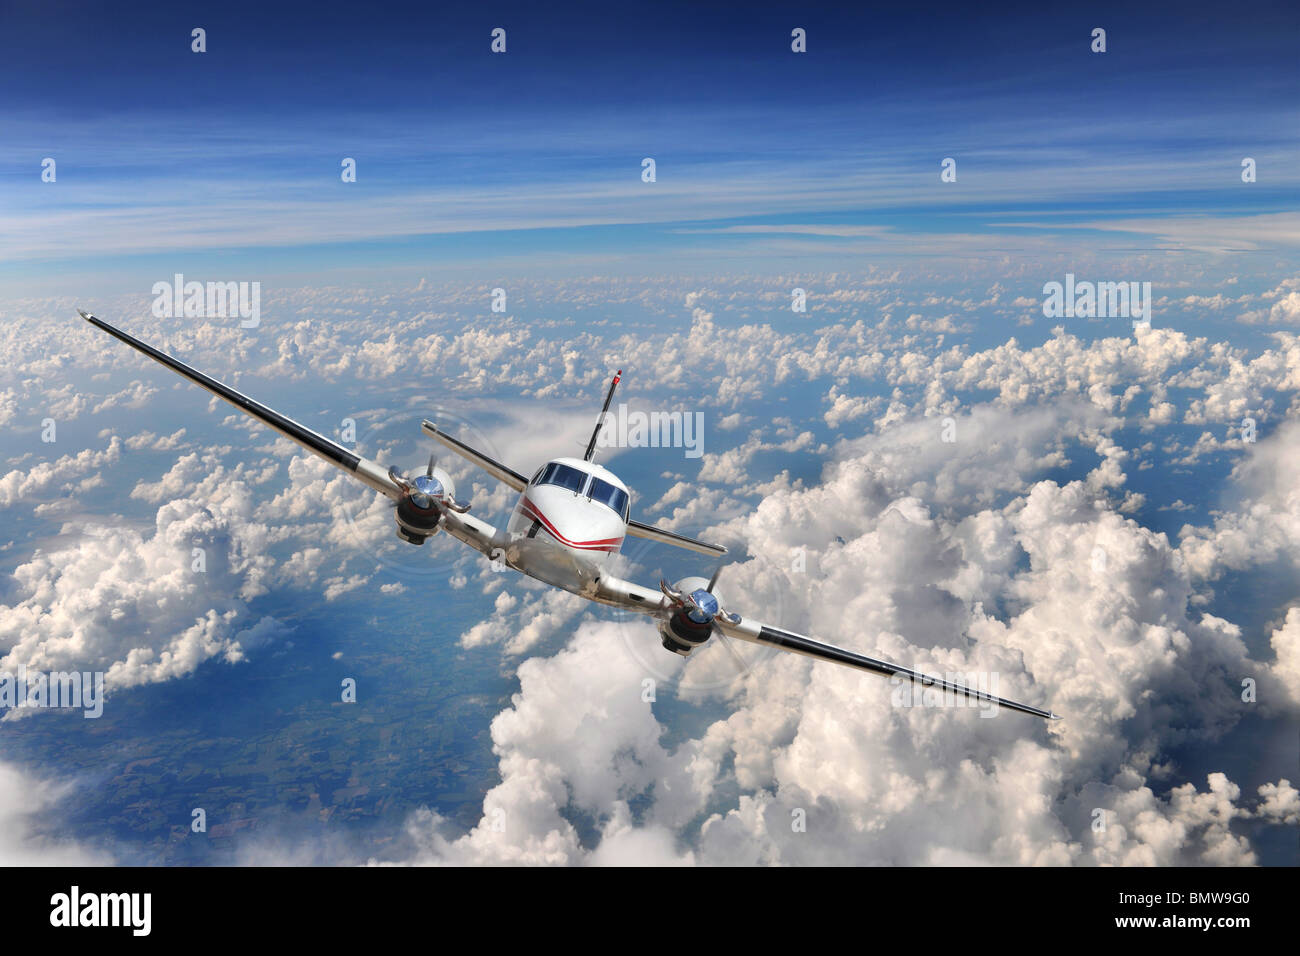 Airplane flying high above the clouds - Stock Image